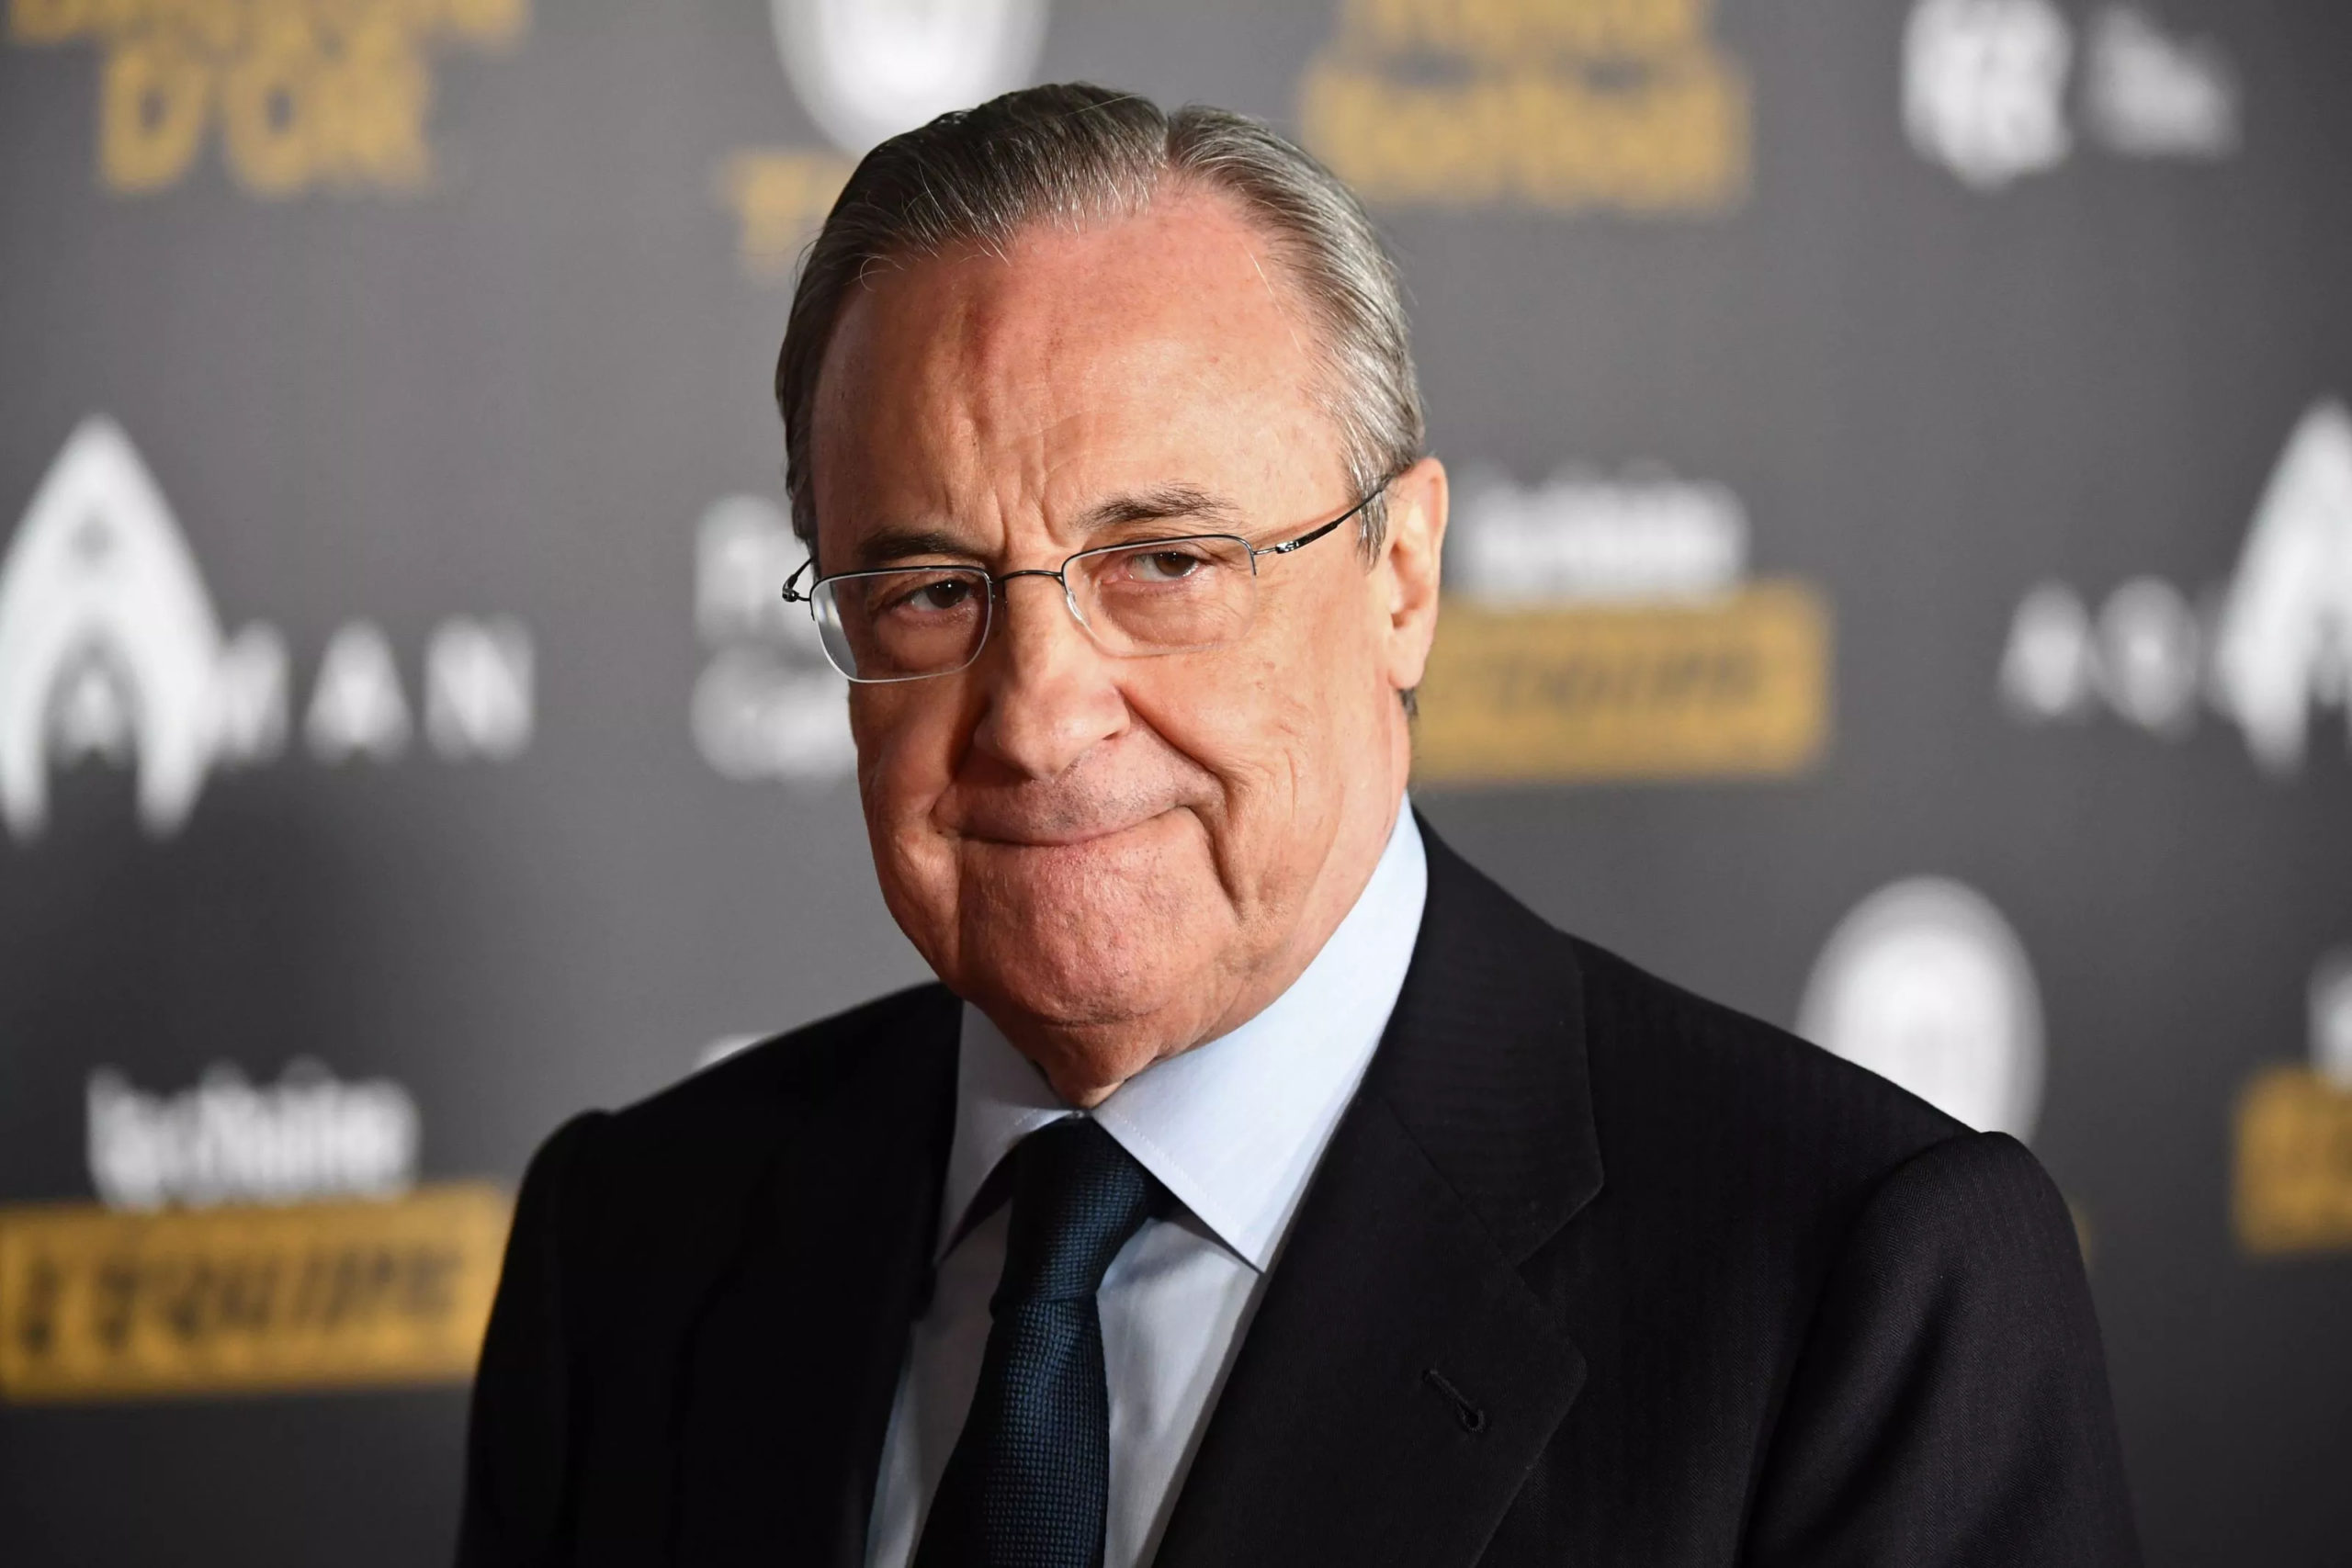 Spanish businessman Florentino Perez is both the president of Real Madrid and the chairman of the European Super League